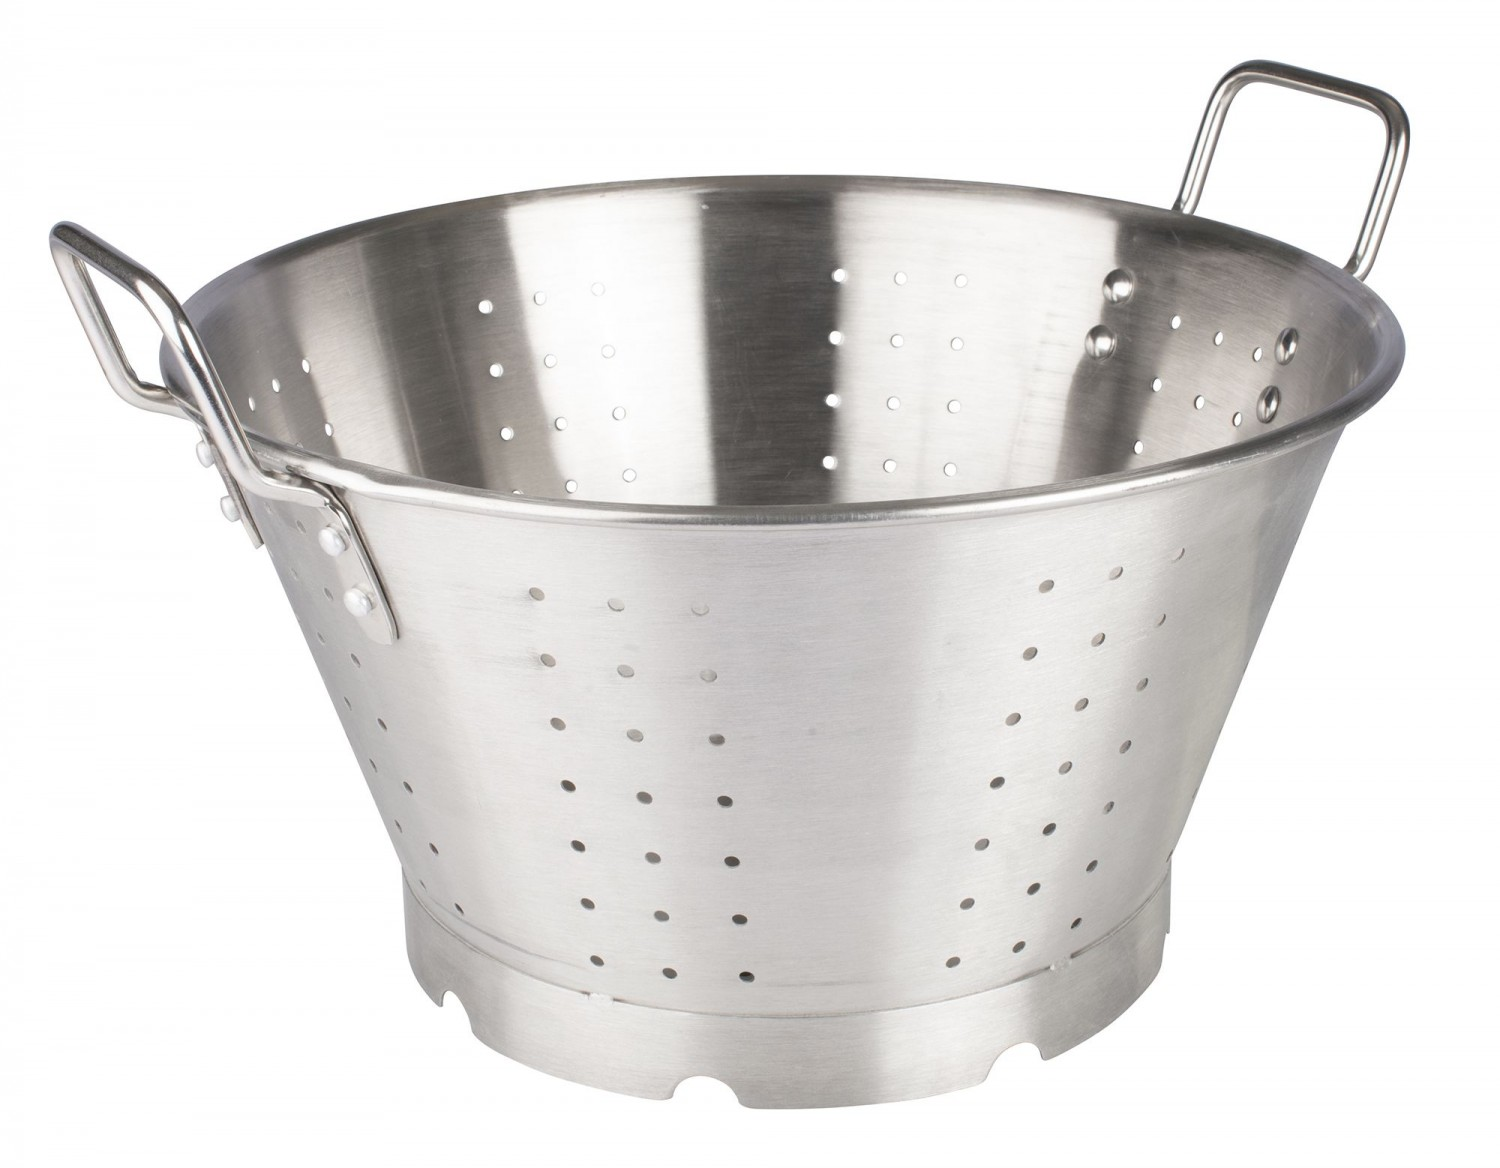 Winco SLO-16 Heavy Duty Stainless Steel Colander 16 Qt.